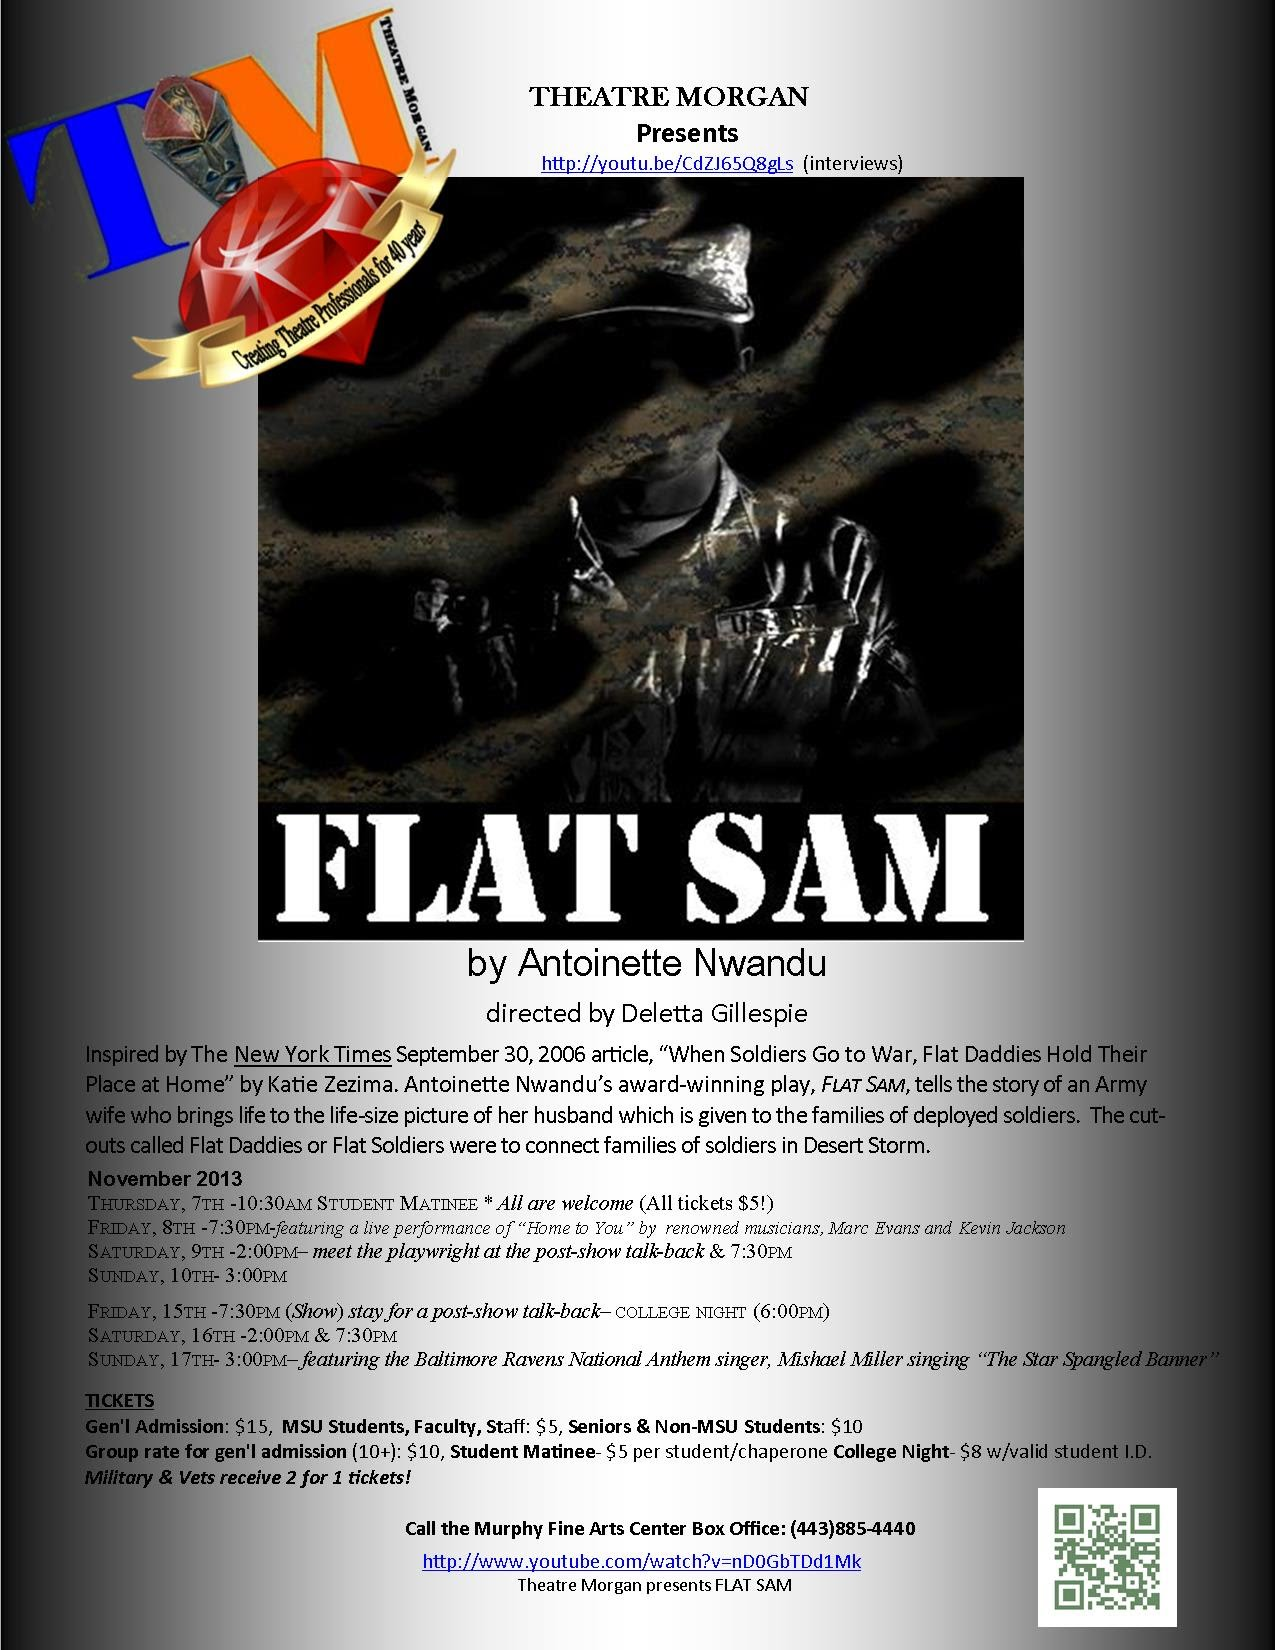 FLAT SAM and activities